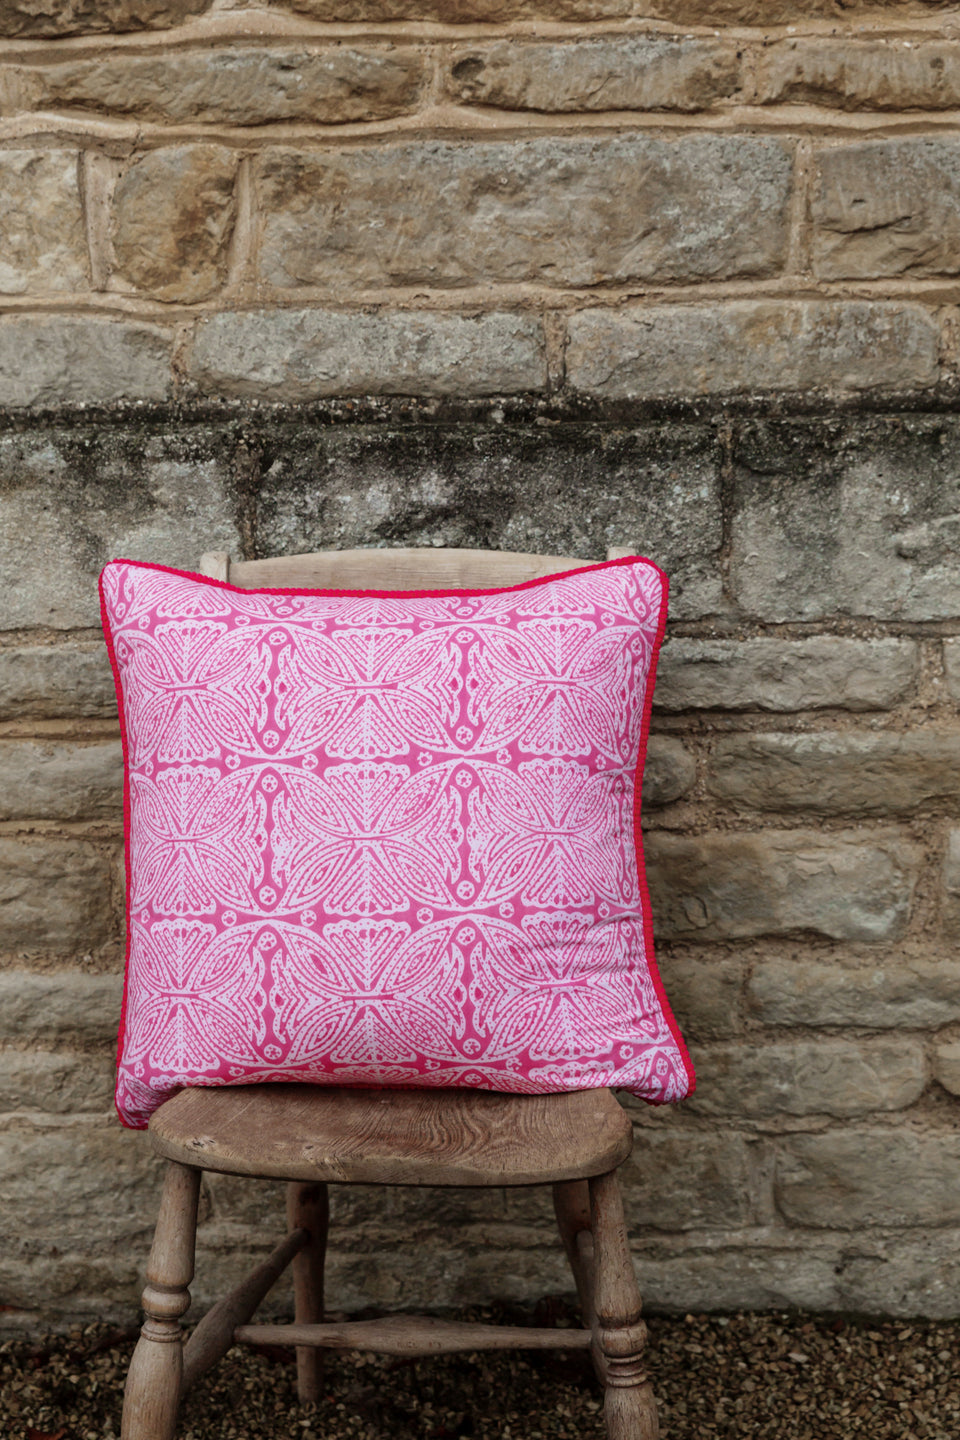 SQUARE FLOWER FABRIC IN PINK